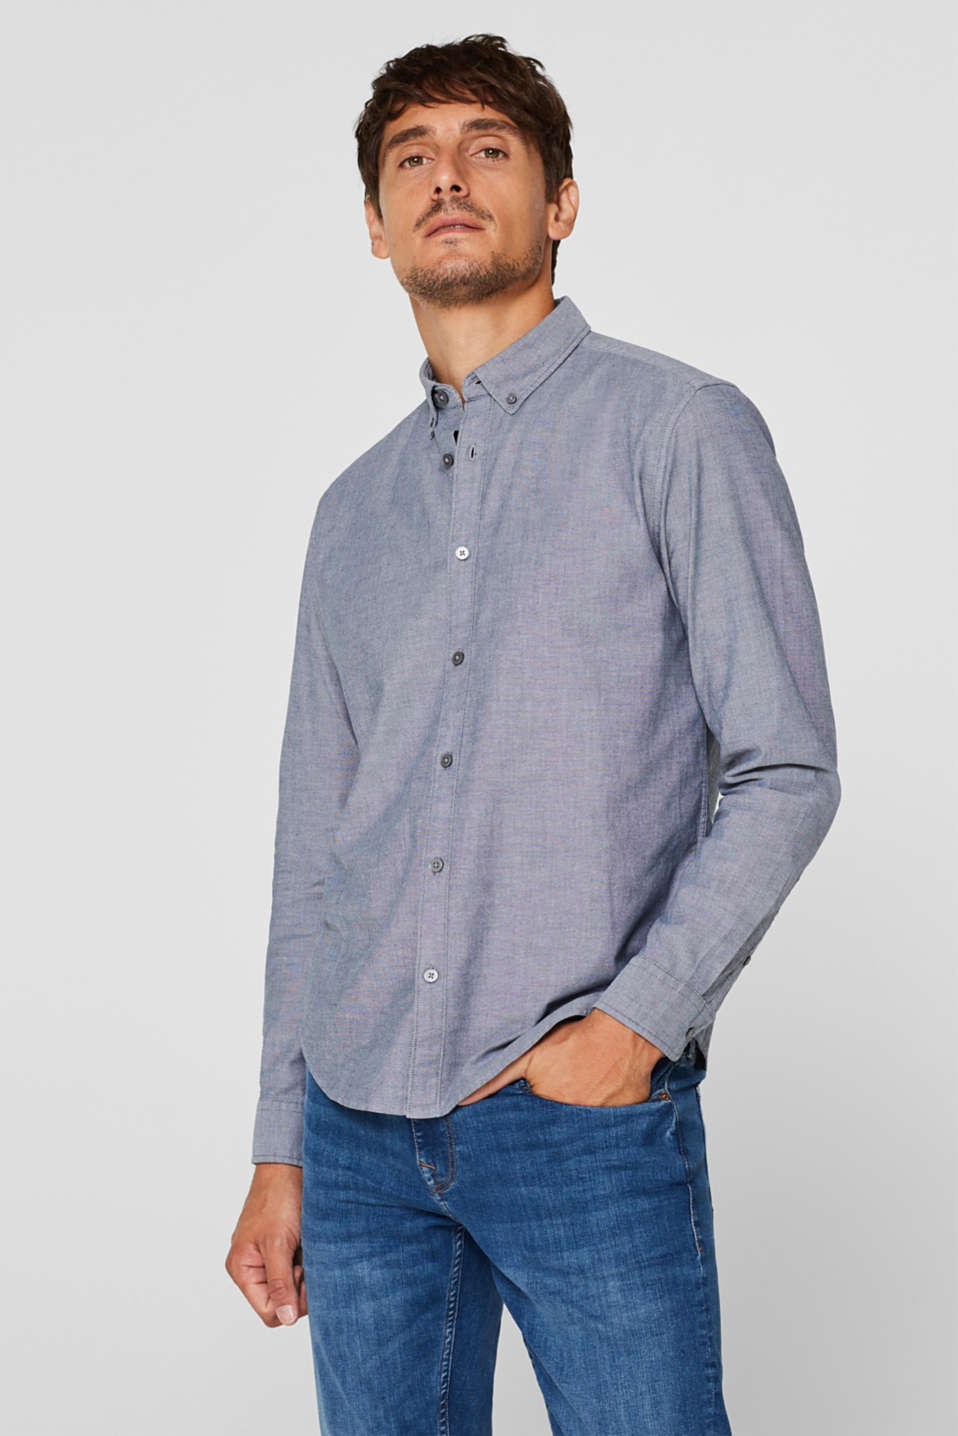 Esprit - Top with a button-down collar